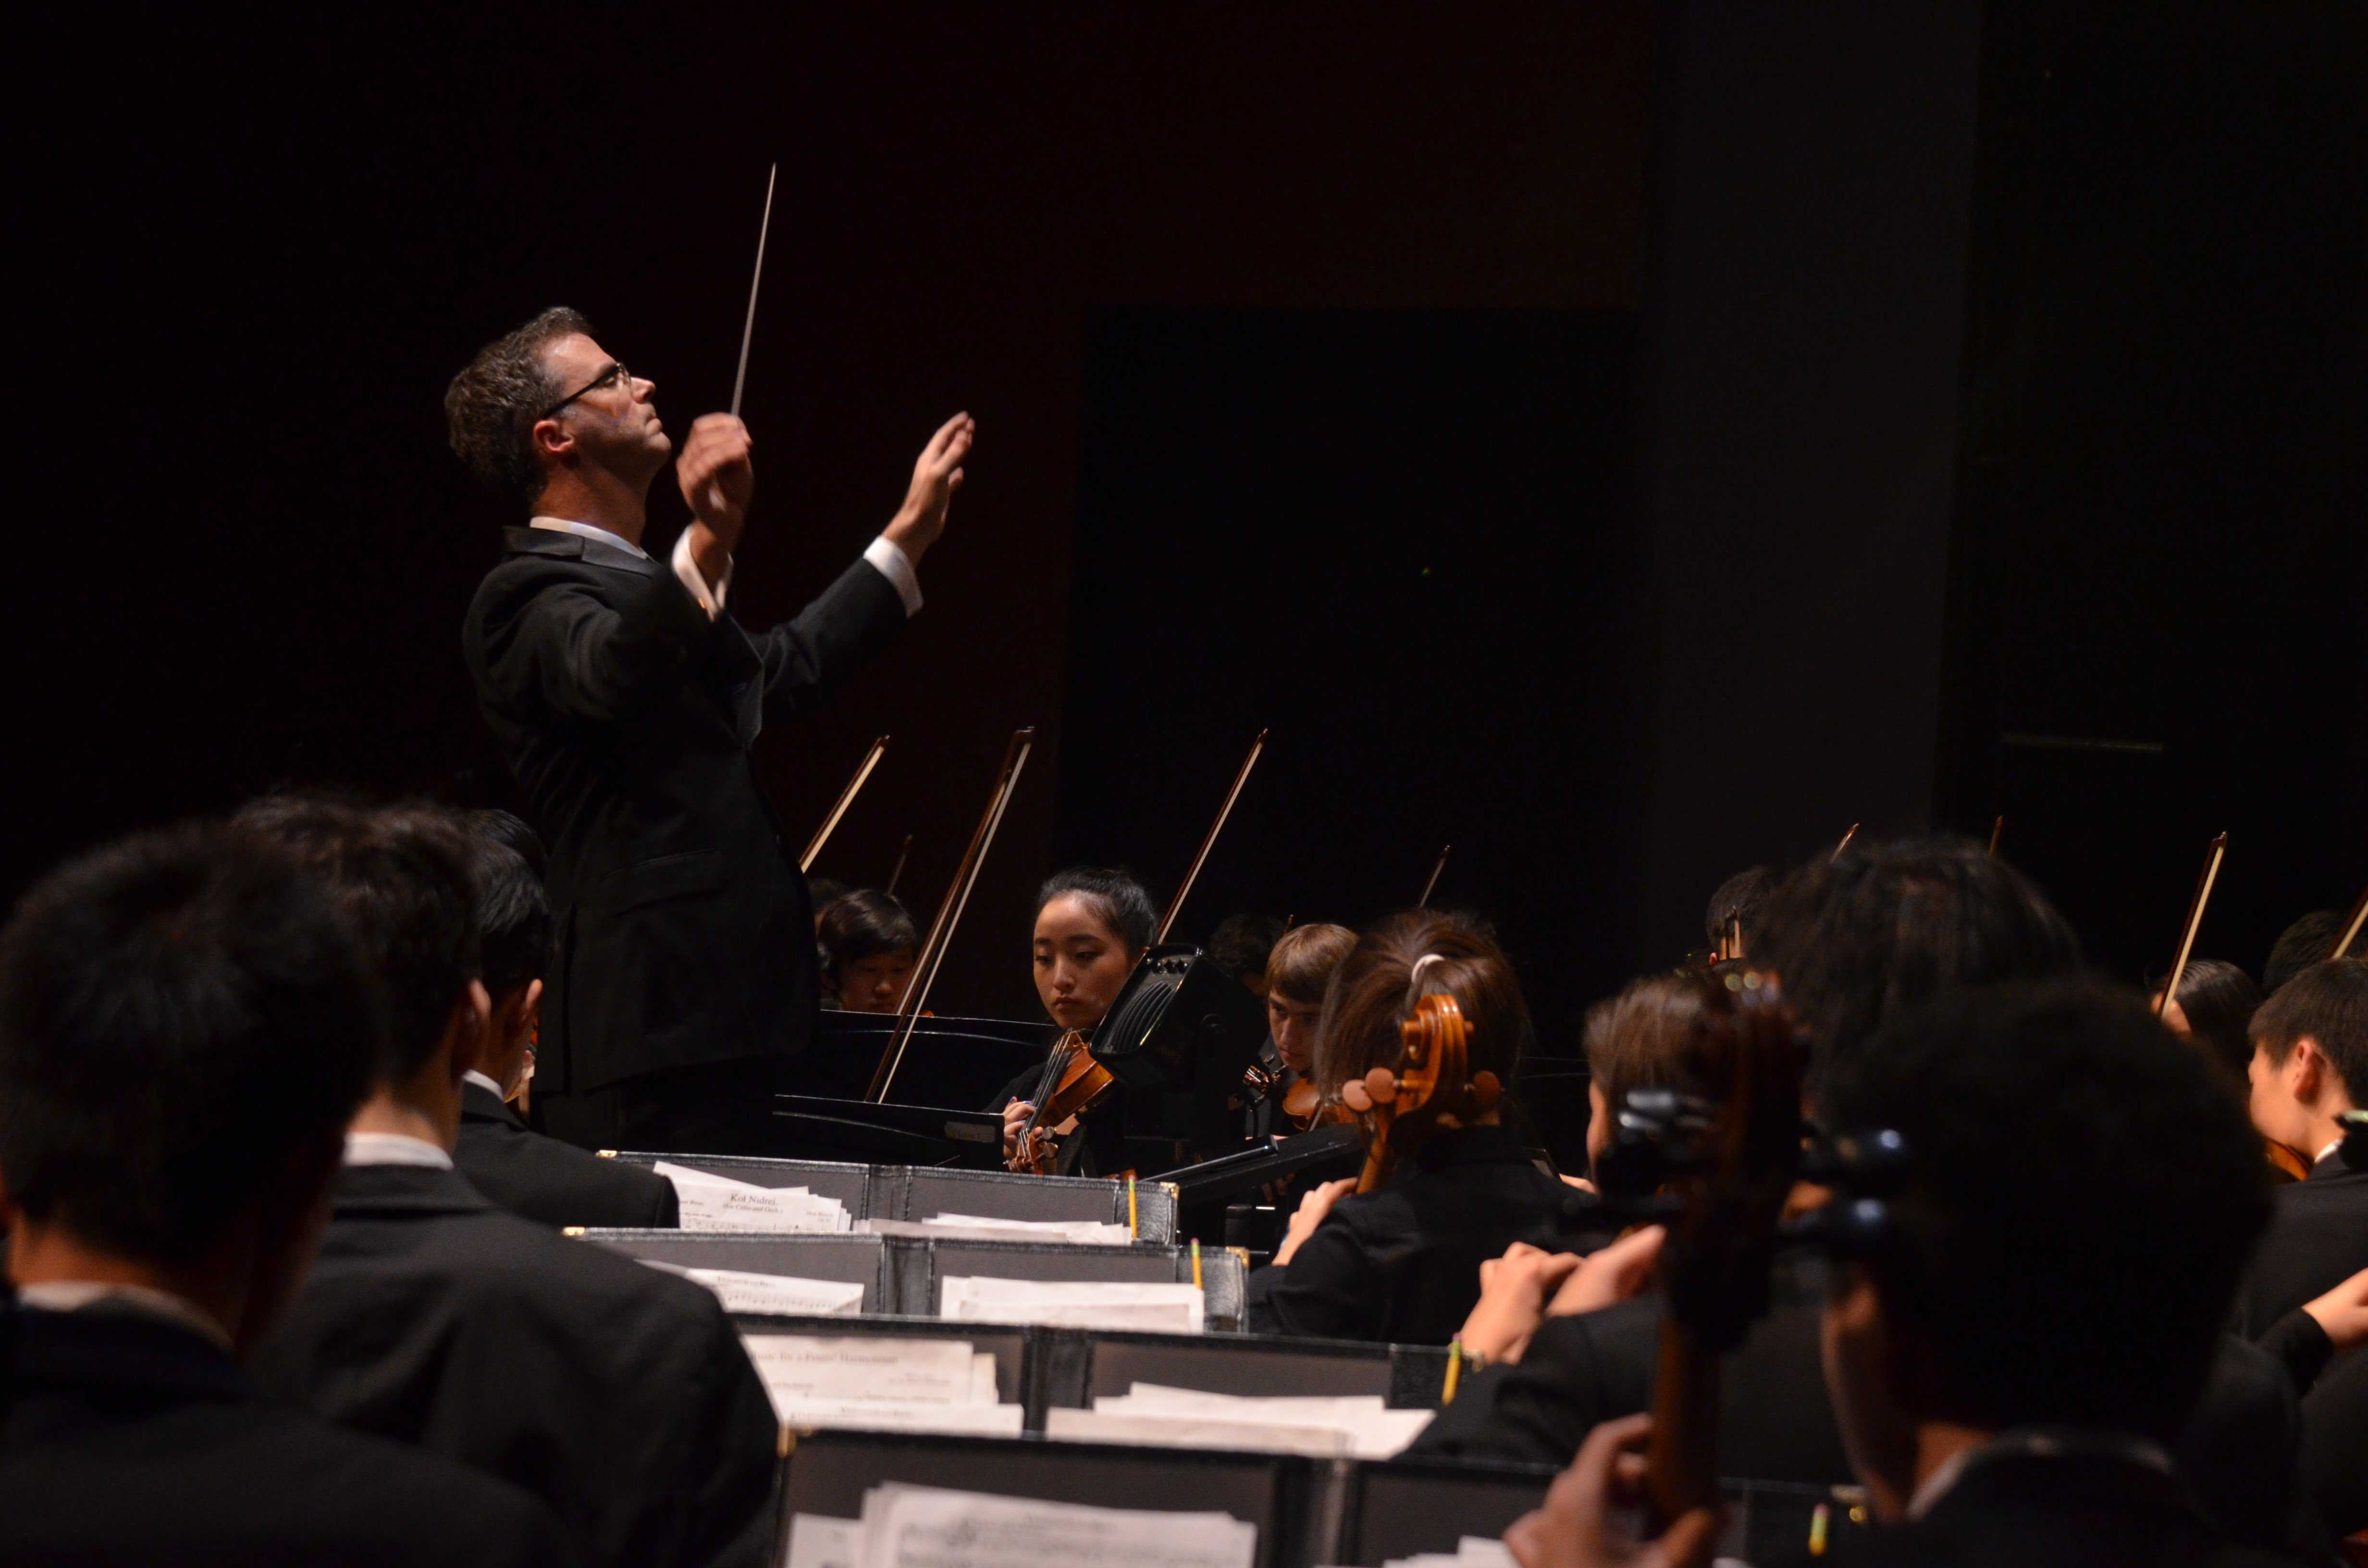 Orchestra conductor Chris Florio conducts the orchestra during the annual Winter Concert. The orchestra is currently in New York for their performance at Carnegie Hall.